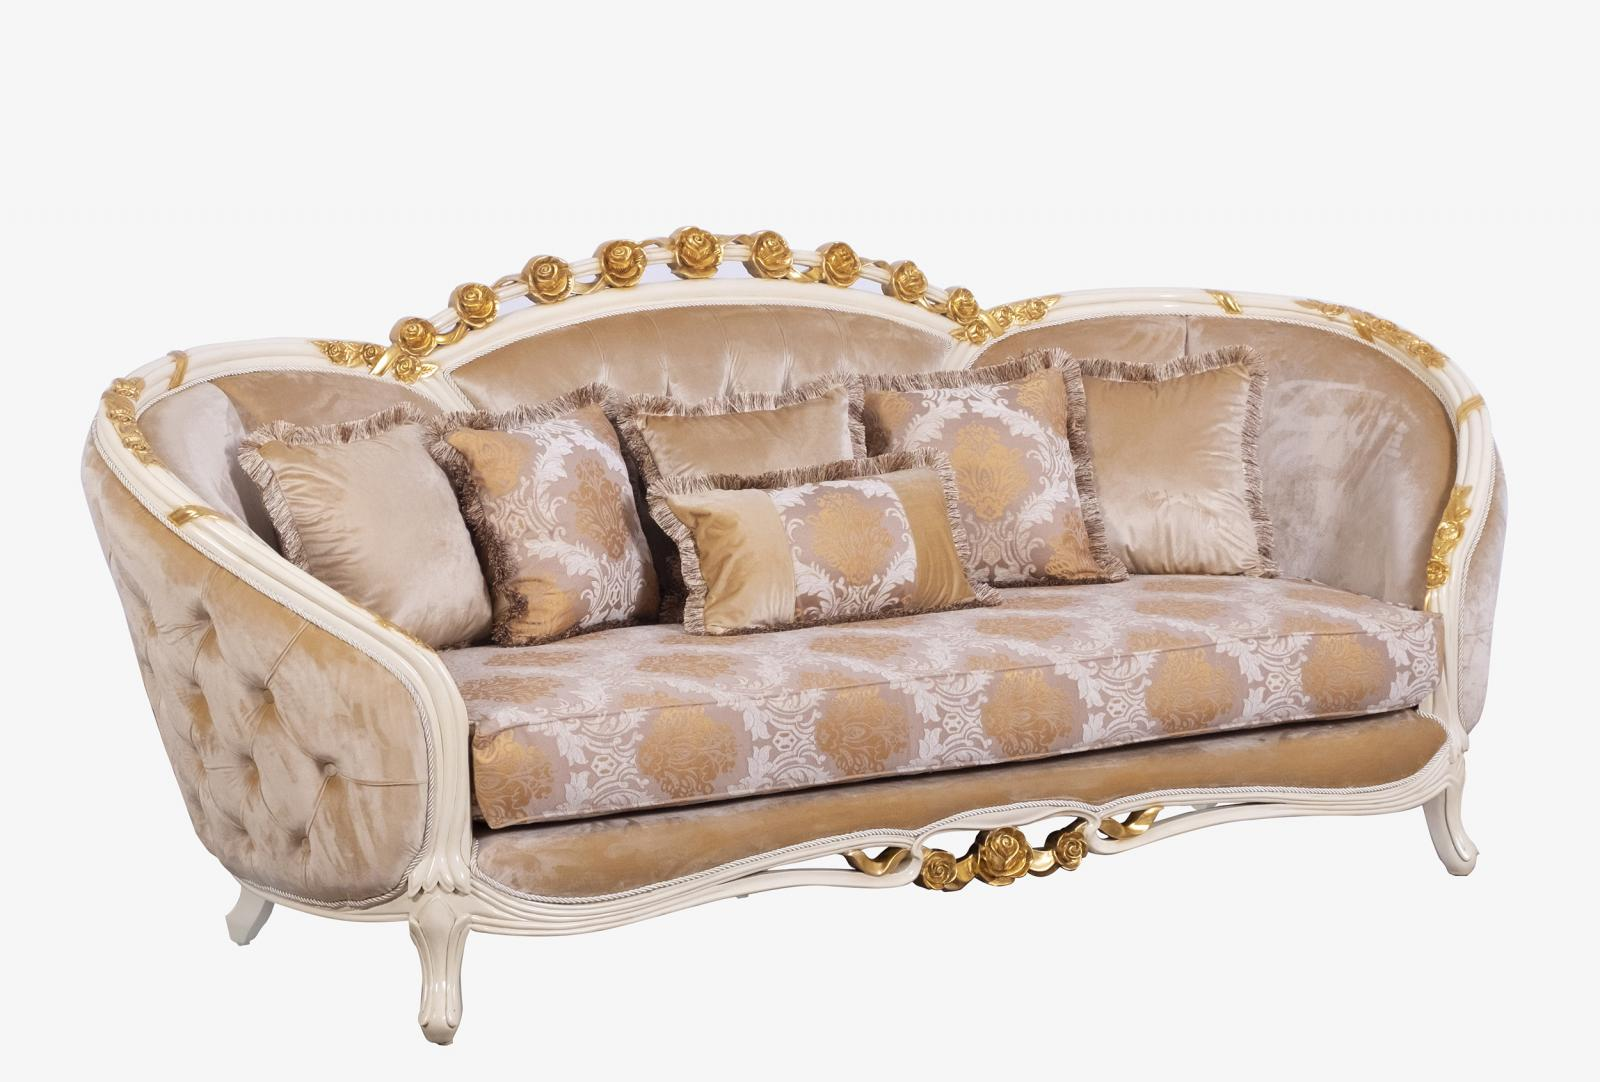 Classic  Traditional Beige  Gold Wood  Solid Hardwood and Fabric Sofa EUROPEAN FURNITURE 45010-S